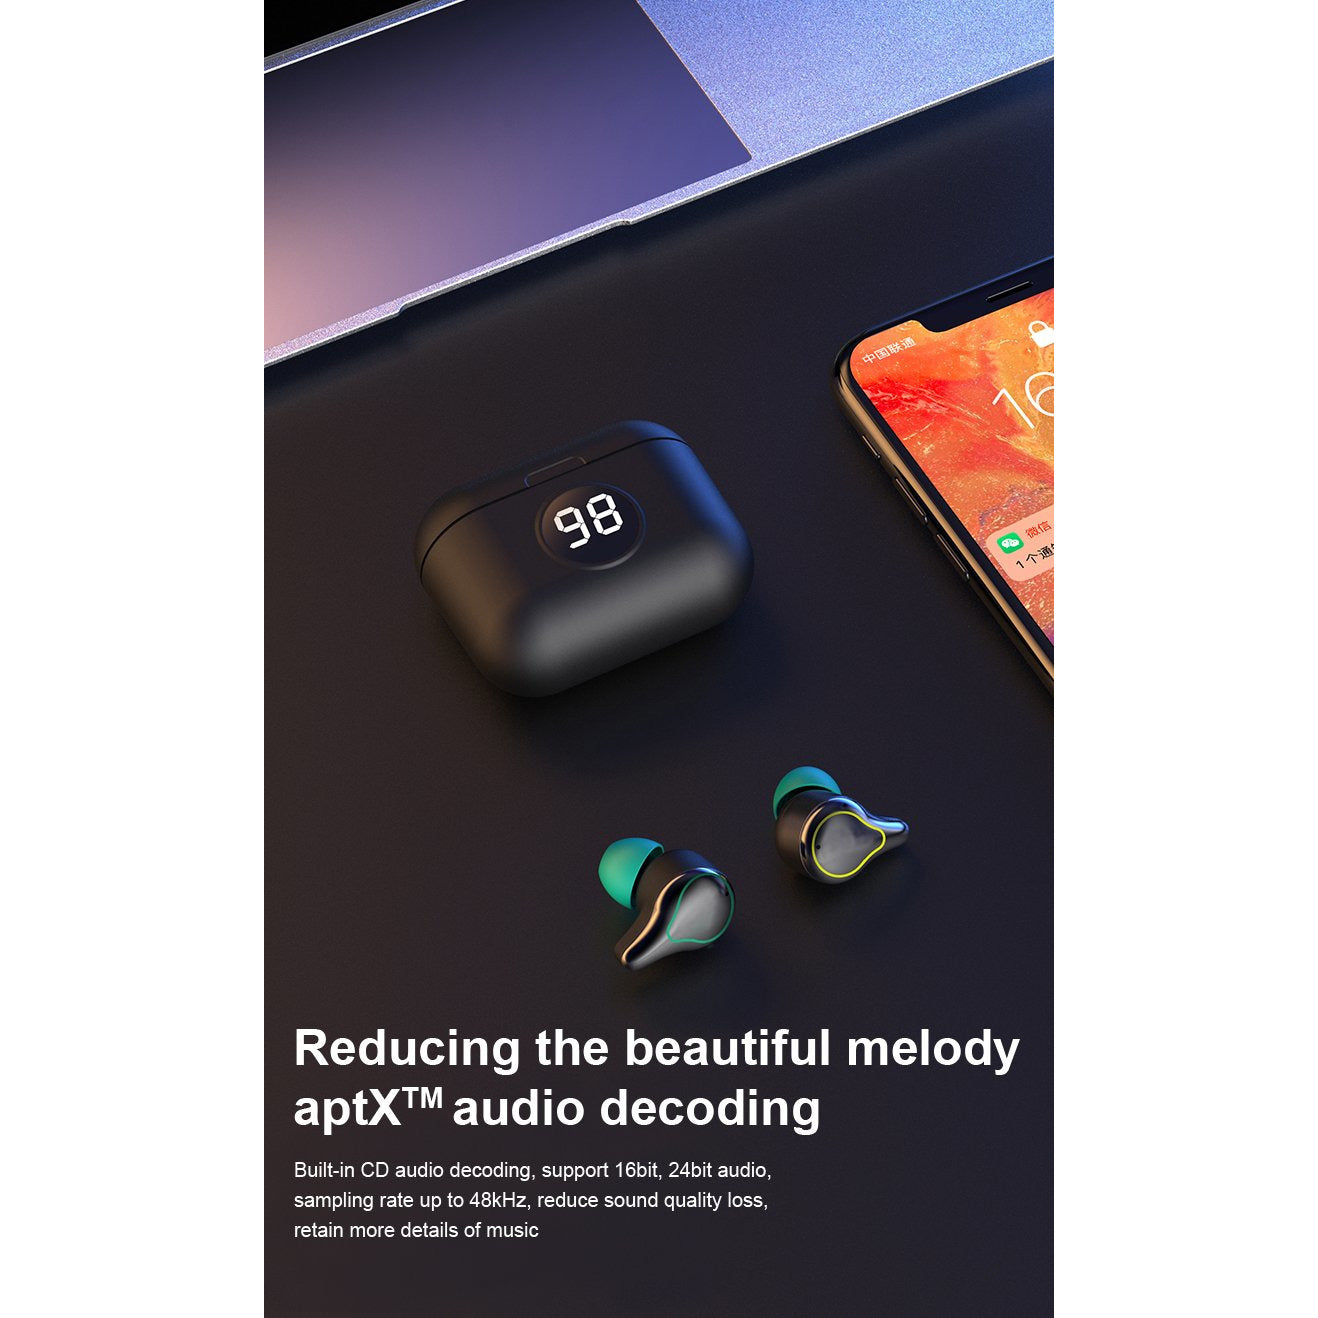 SE-16S TWS Wireless Bluetooth 5.0, Stereo Touch, Sweatproof In-ear Earbuds for iOS/Android